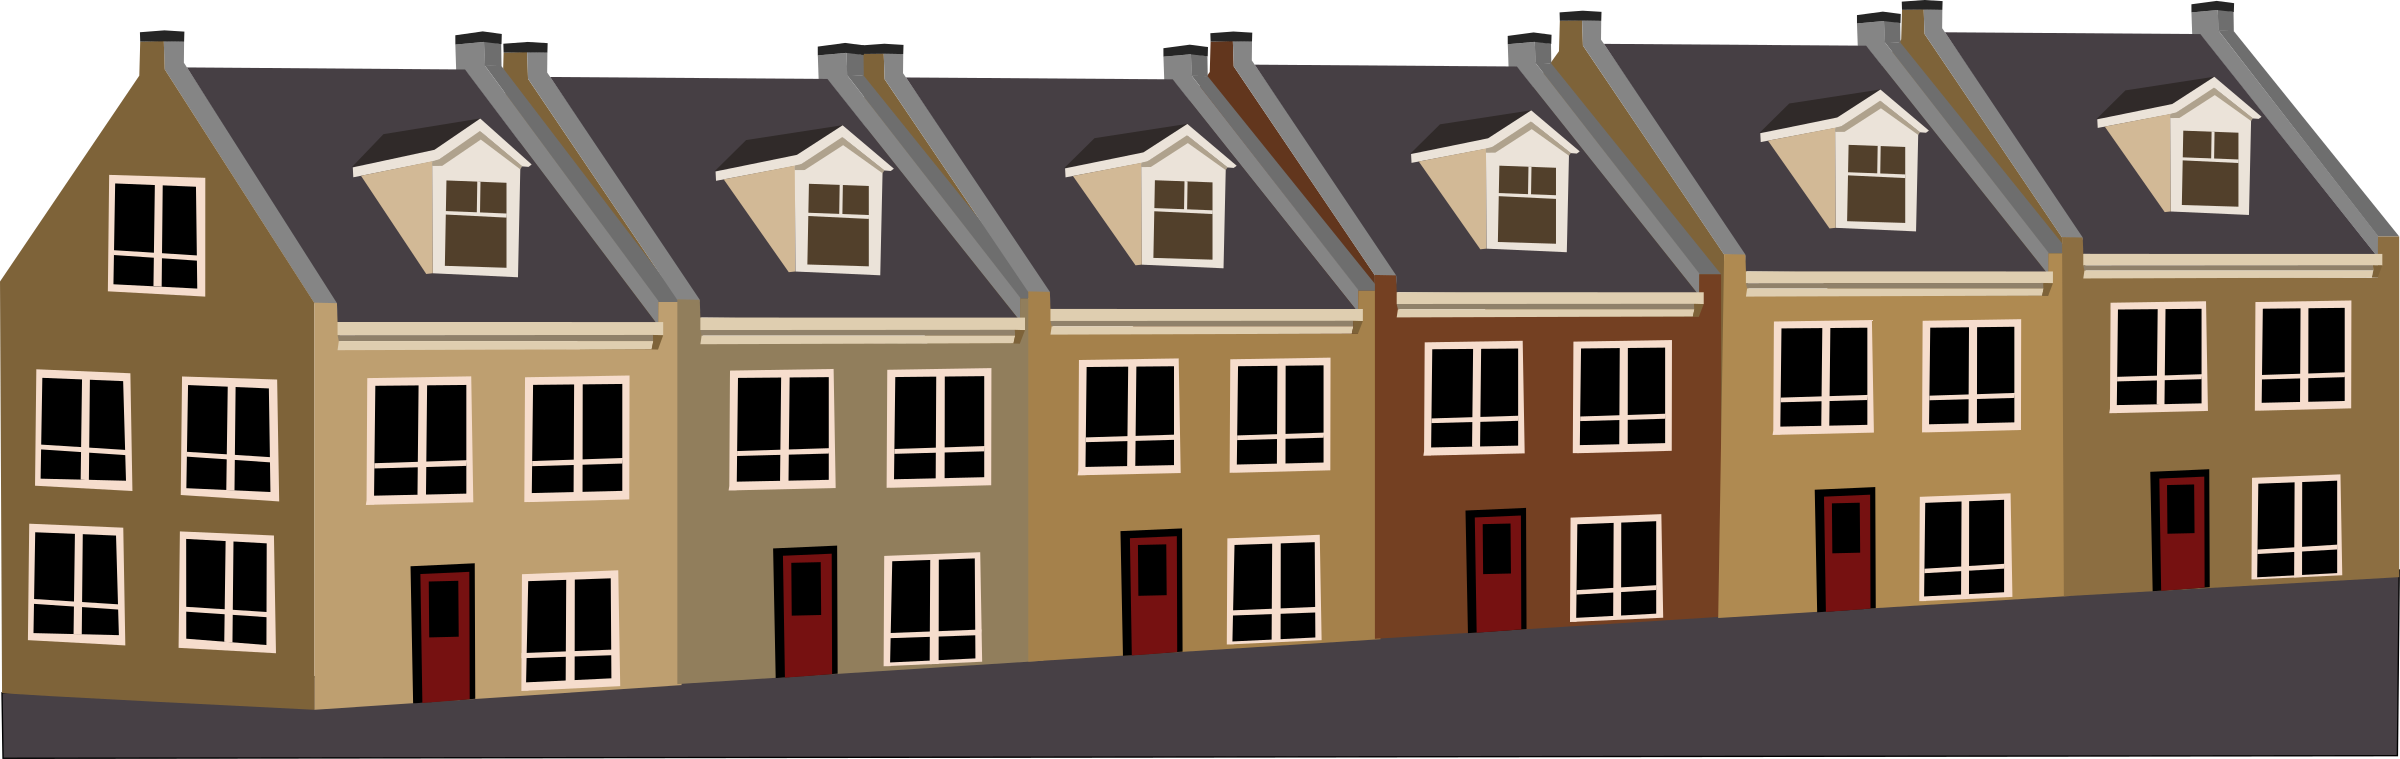 Tarraced houses by rdevries